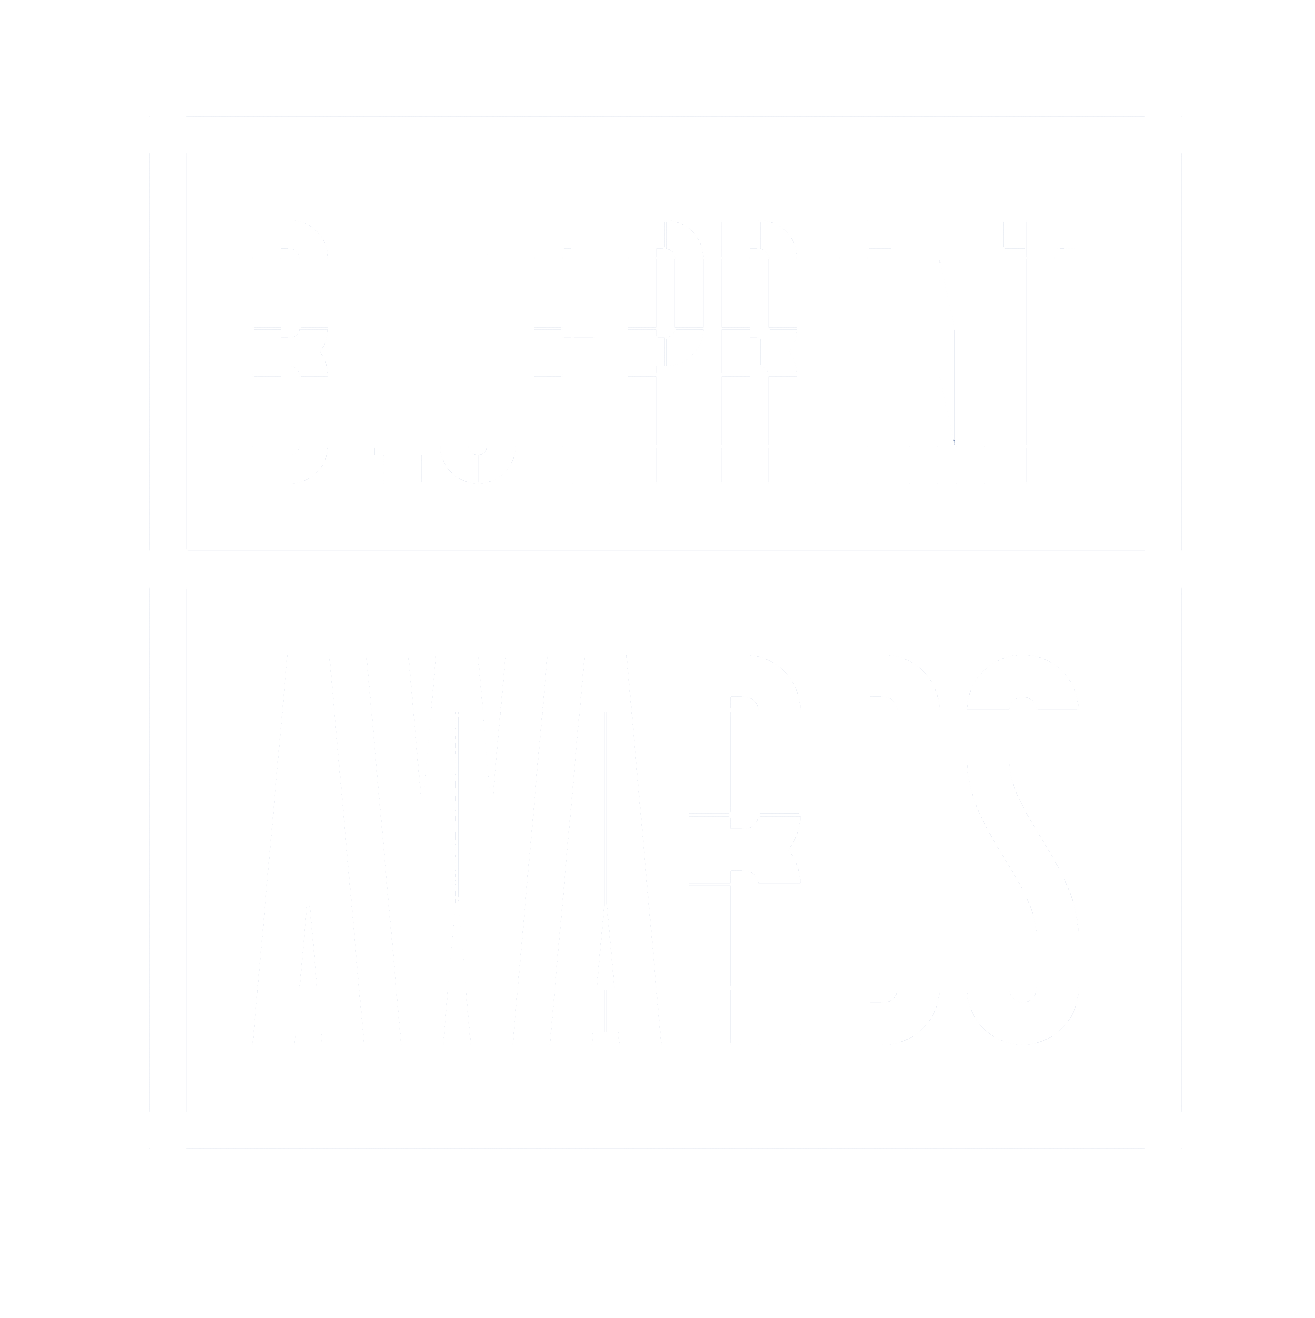 Blueprint awards welcome to the 2017 blueprint awards malvernweather Image collections